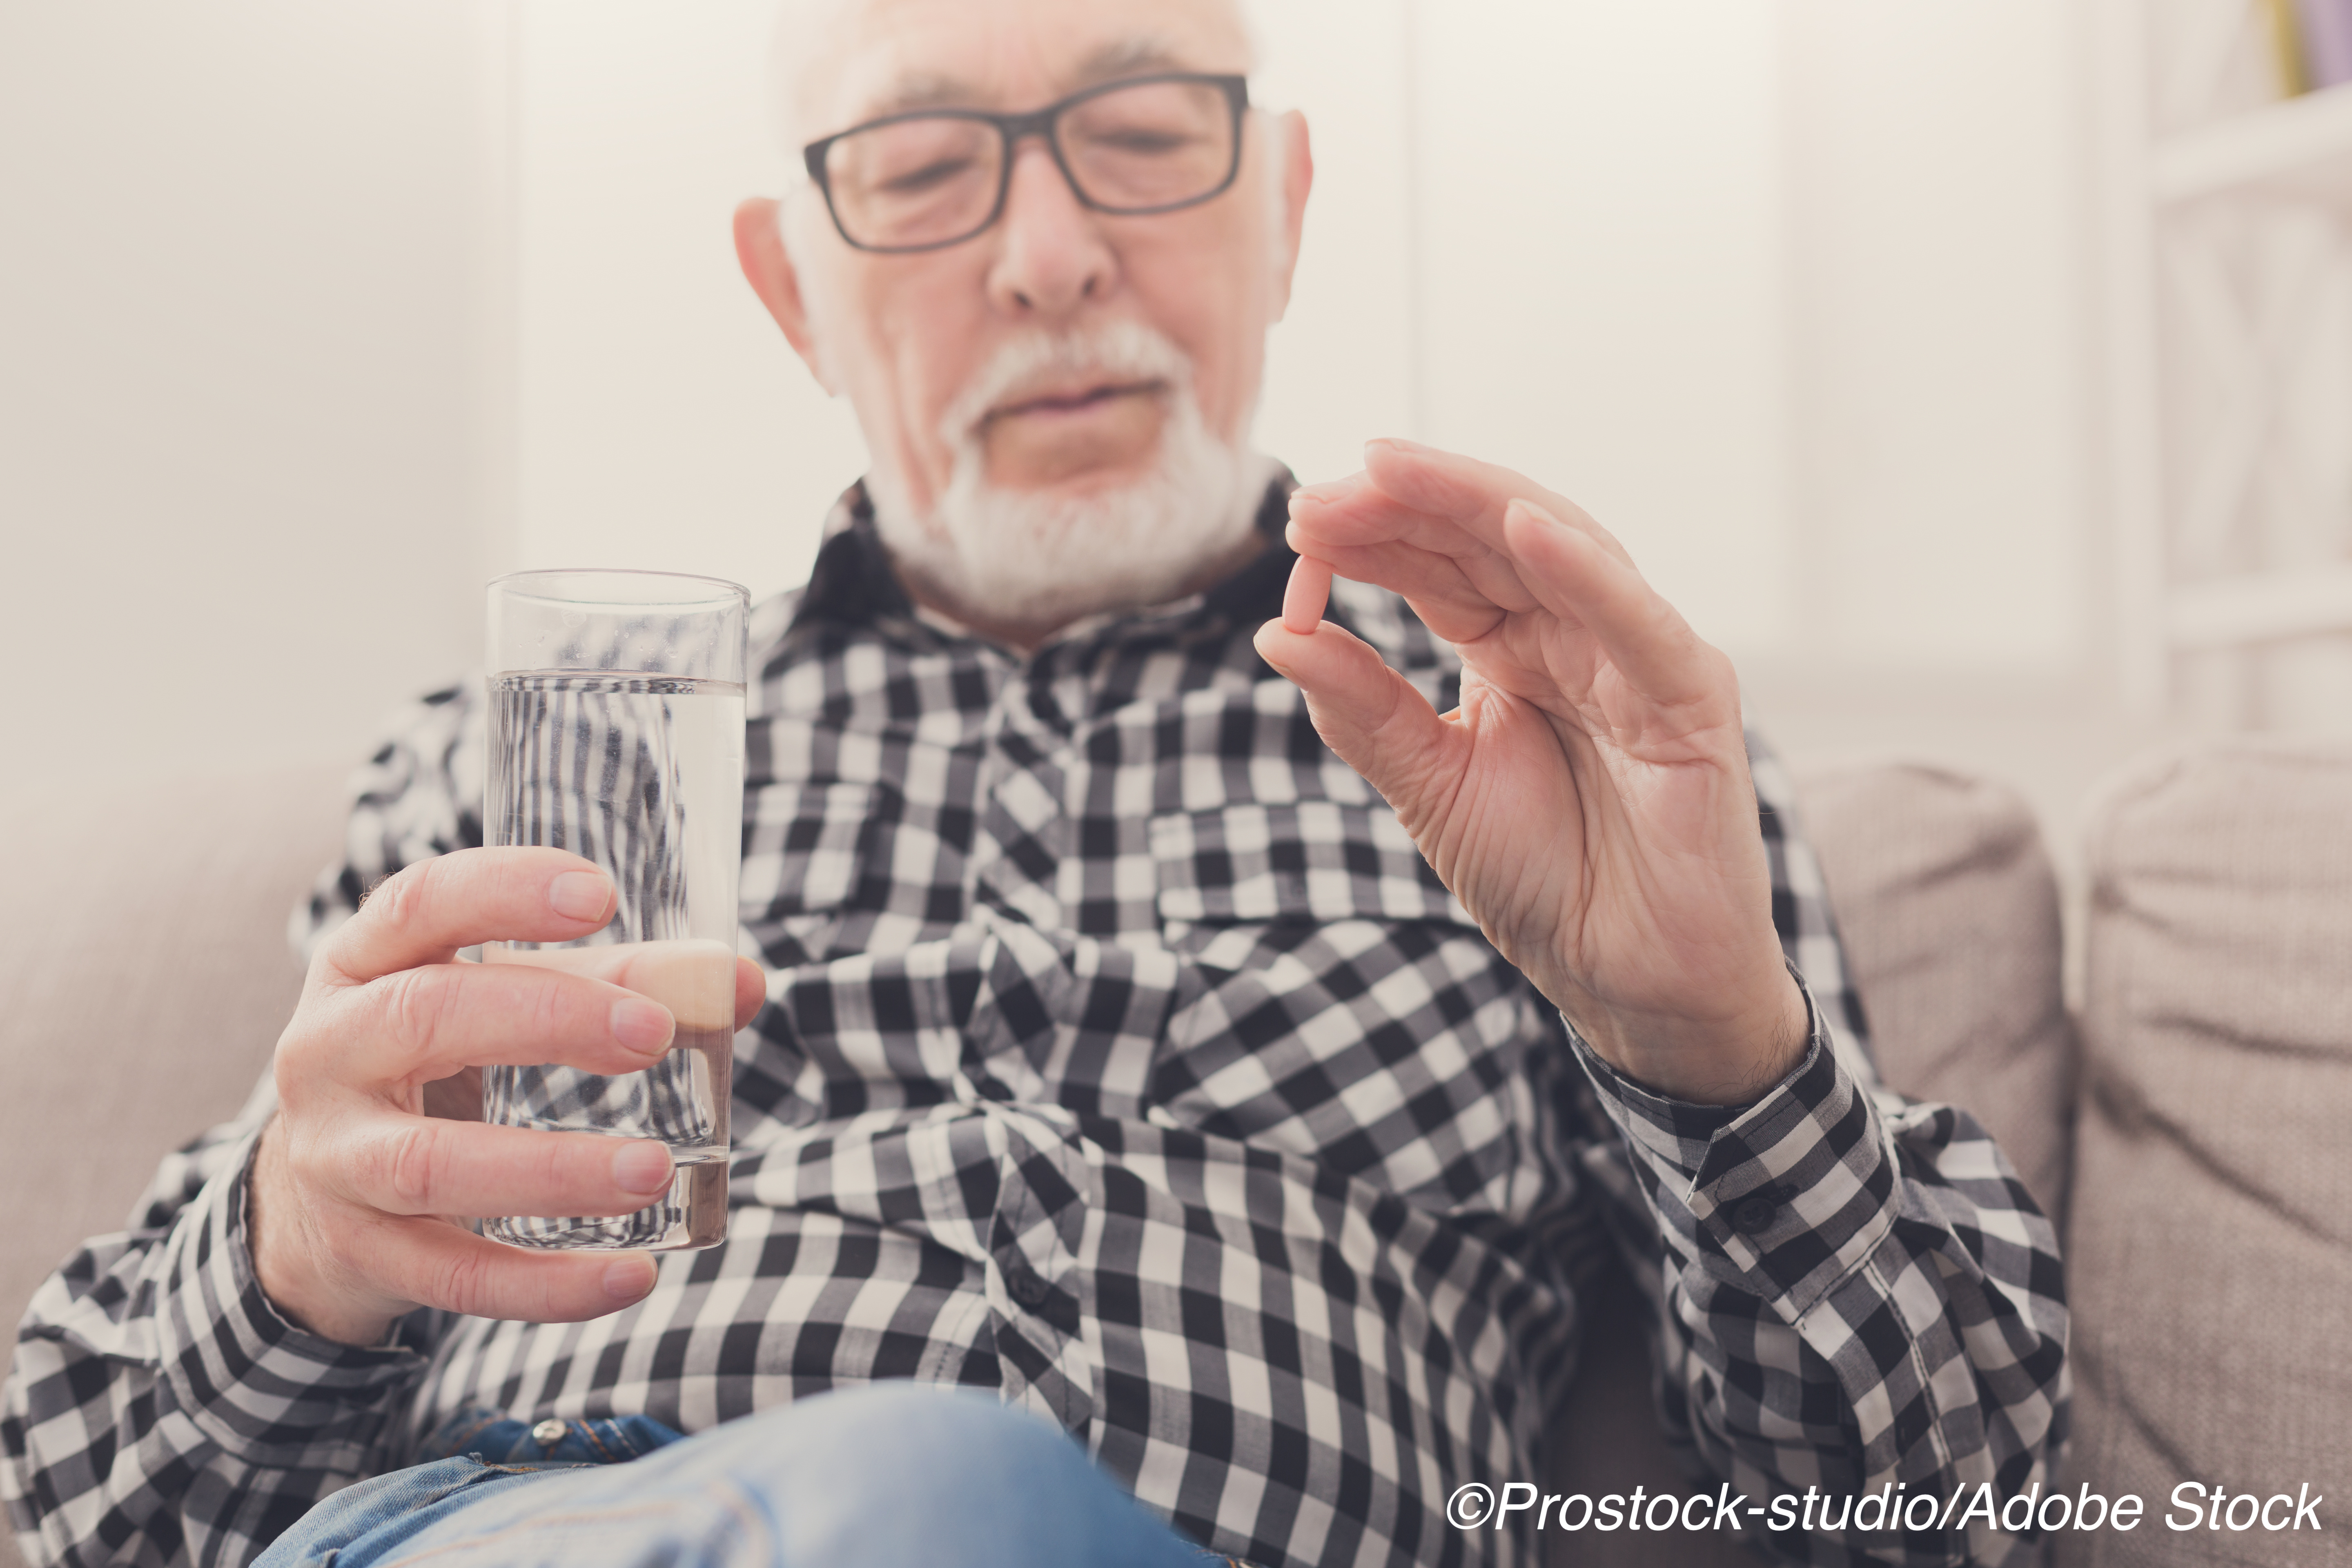 Statins for Primary Prevention in Elderly Reduce All-Cause Mortality